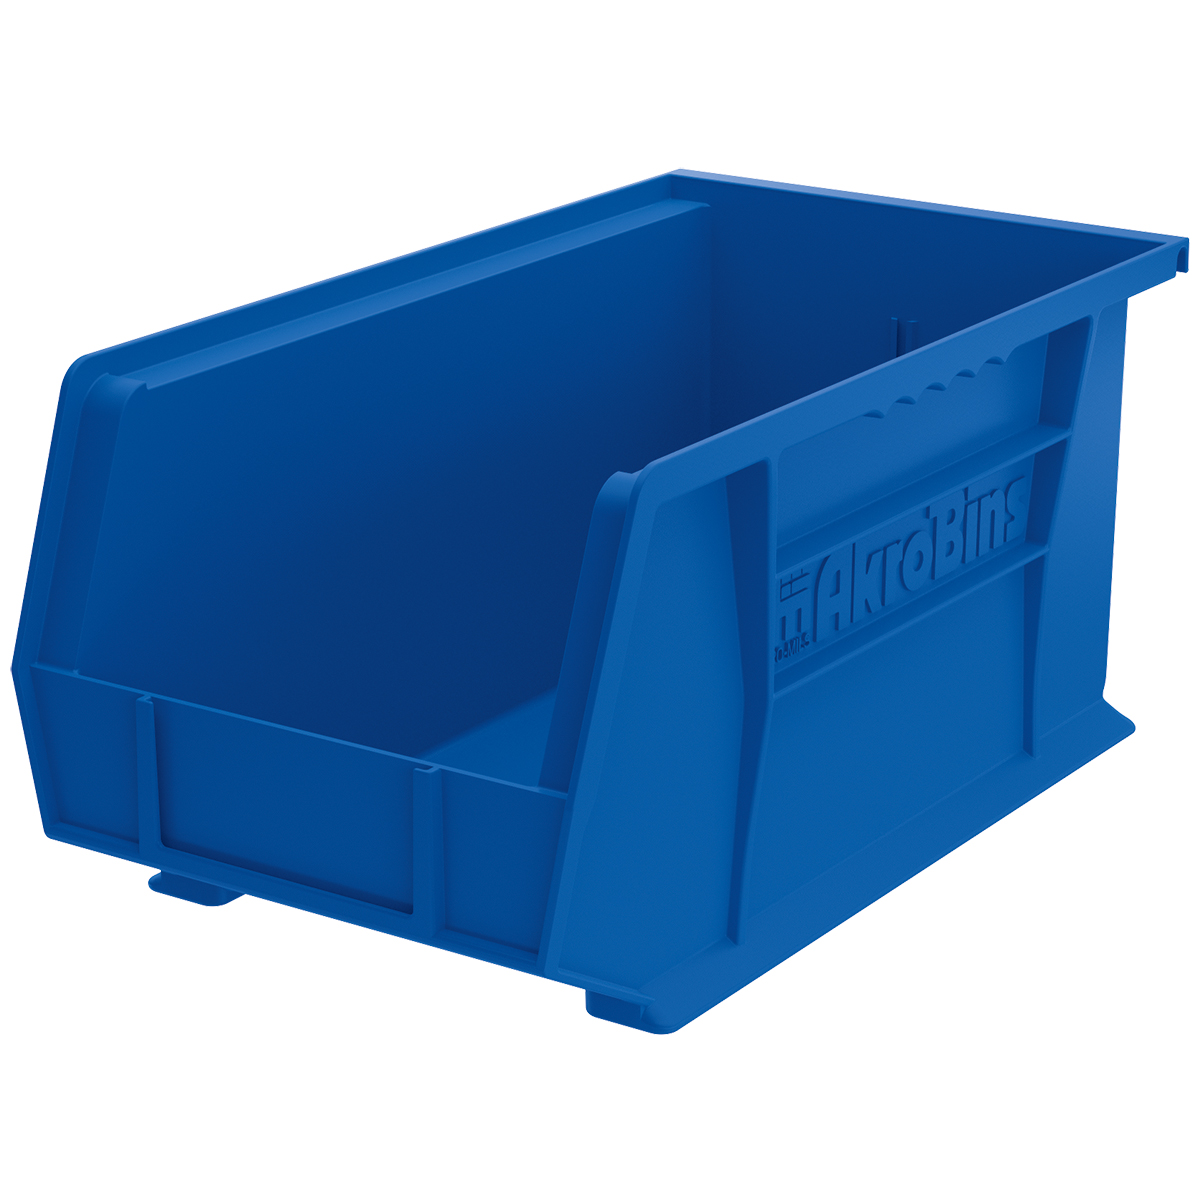 AkroBin 14-3/4 x 8-1/4 x 7, Blue (30240BLUE).  This item sold in carton quantities of 12.